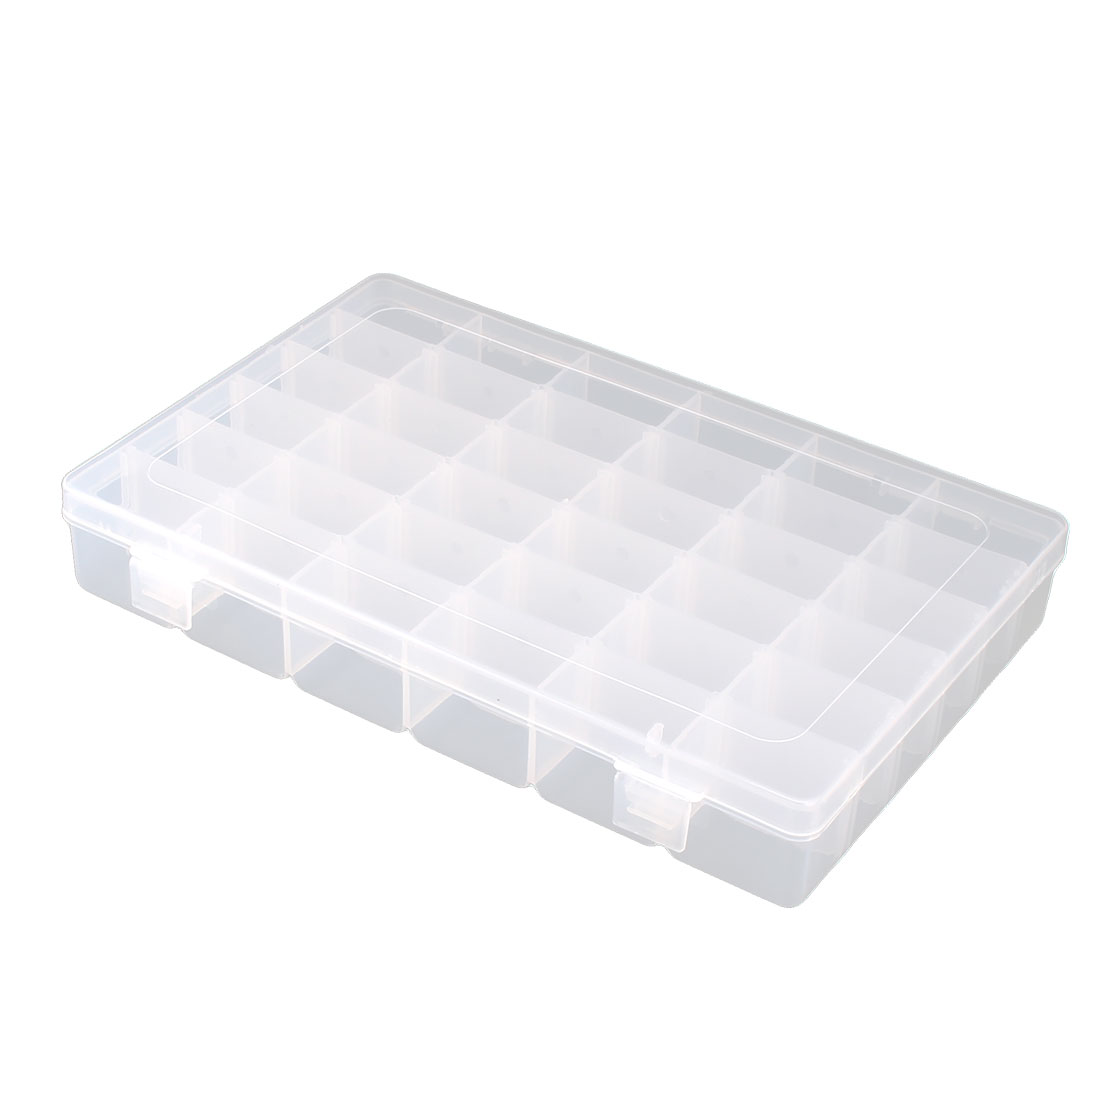 Household Plastic 36 Compartments Jewelry Earring Container Storage Case Clear